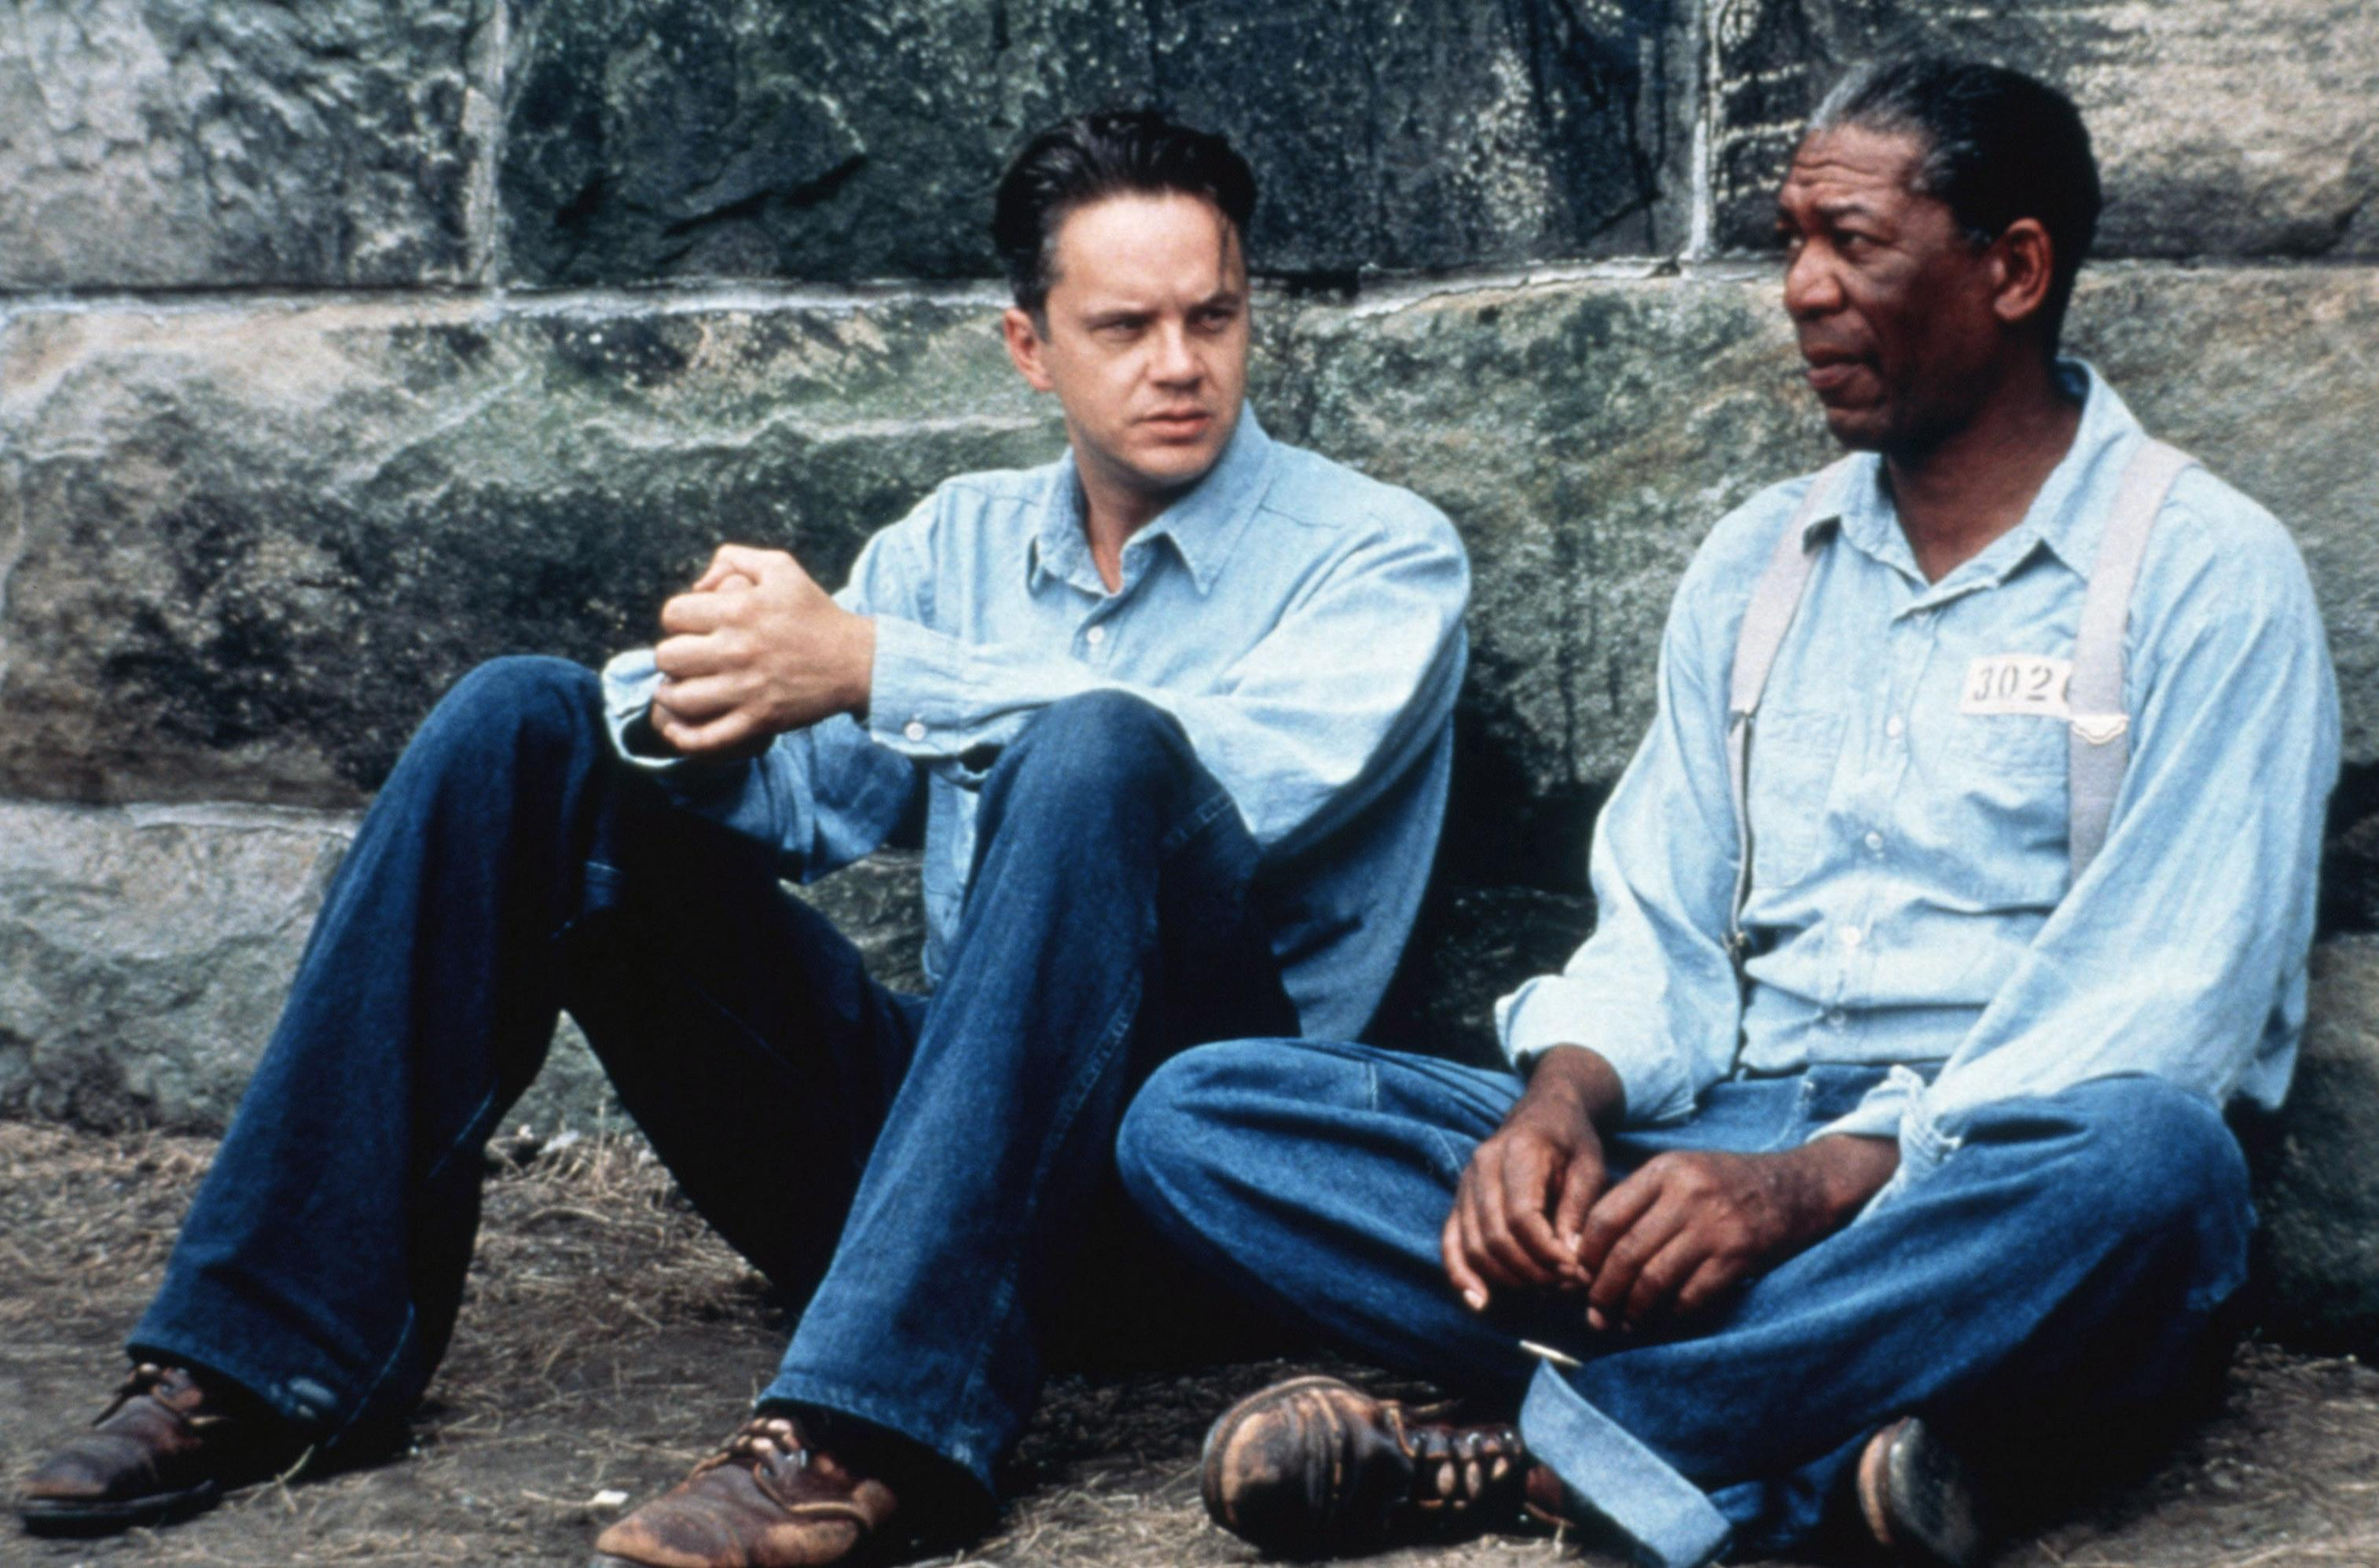 Tim Robbins and Morgan Freeman in 'The Shawshank Redemption' (Photo: Columbia/courtesy Everett Collection)